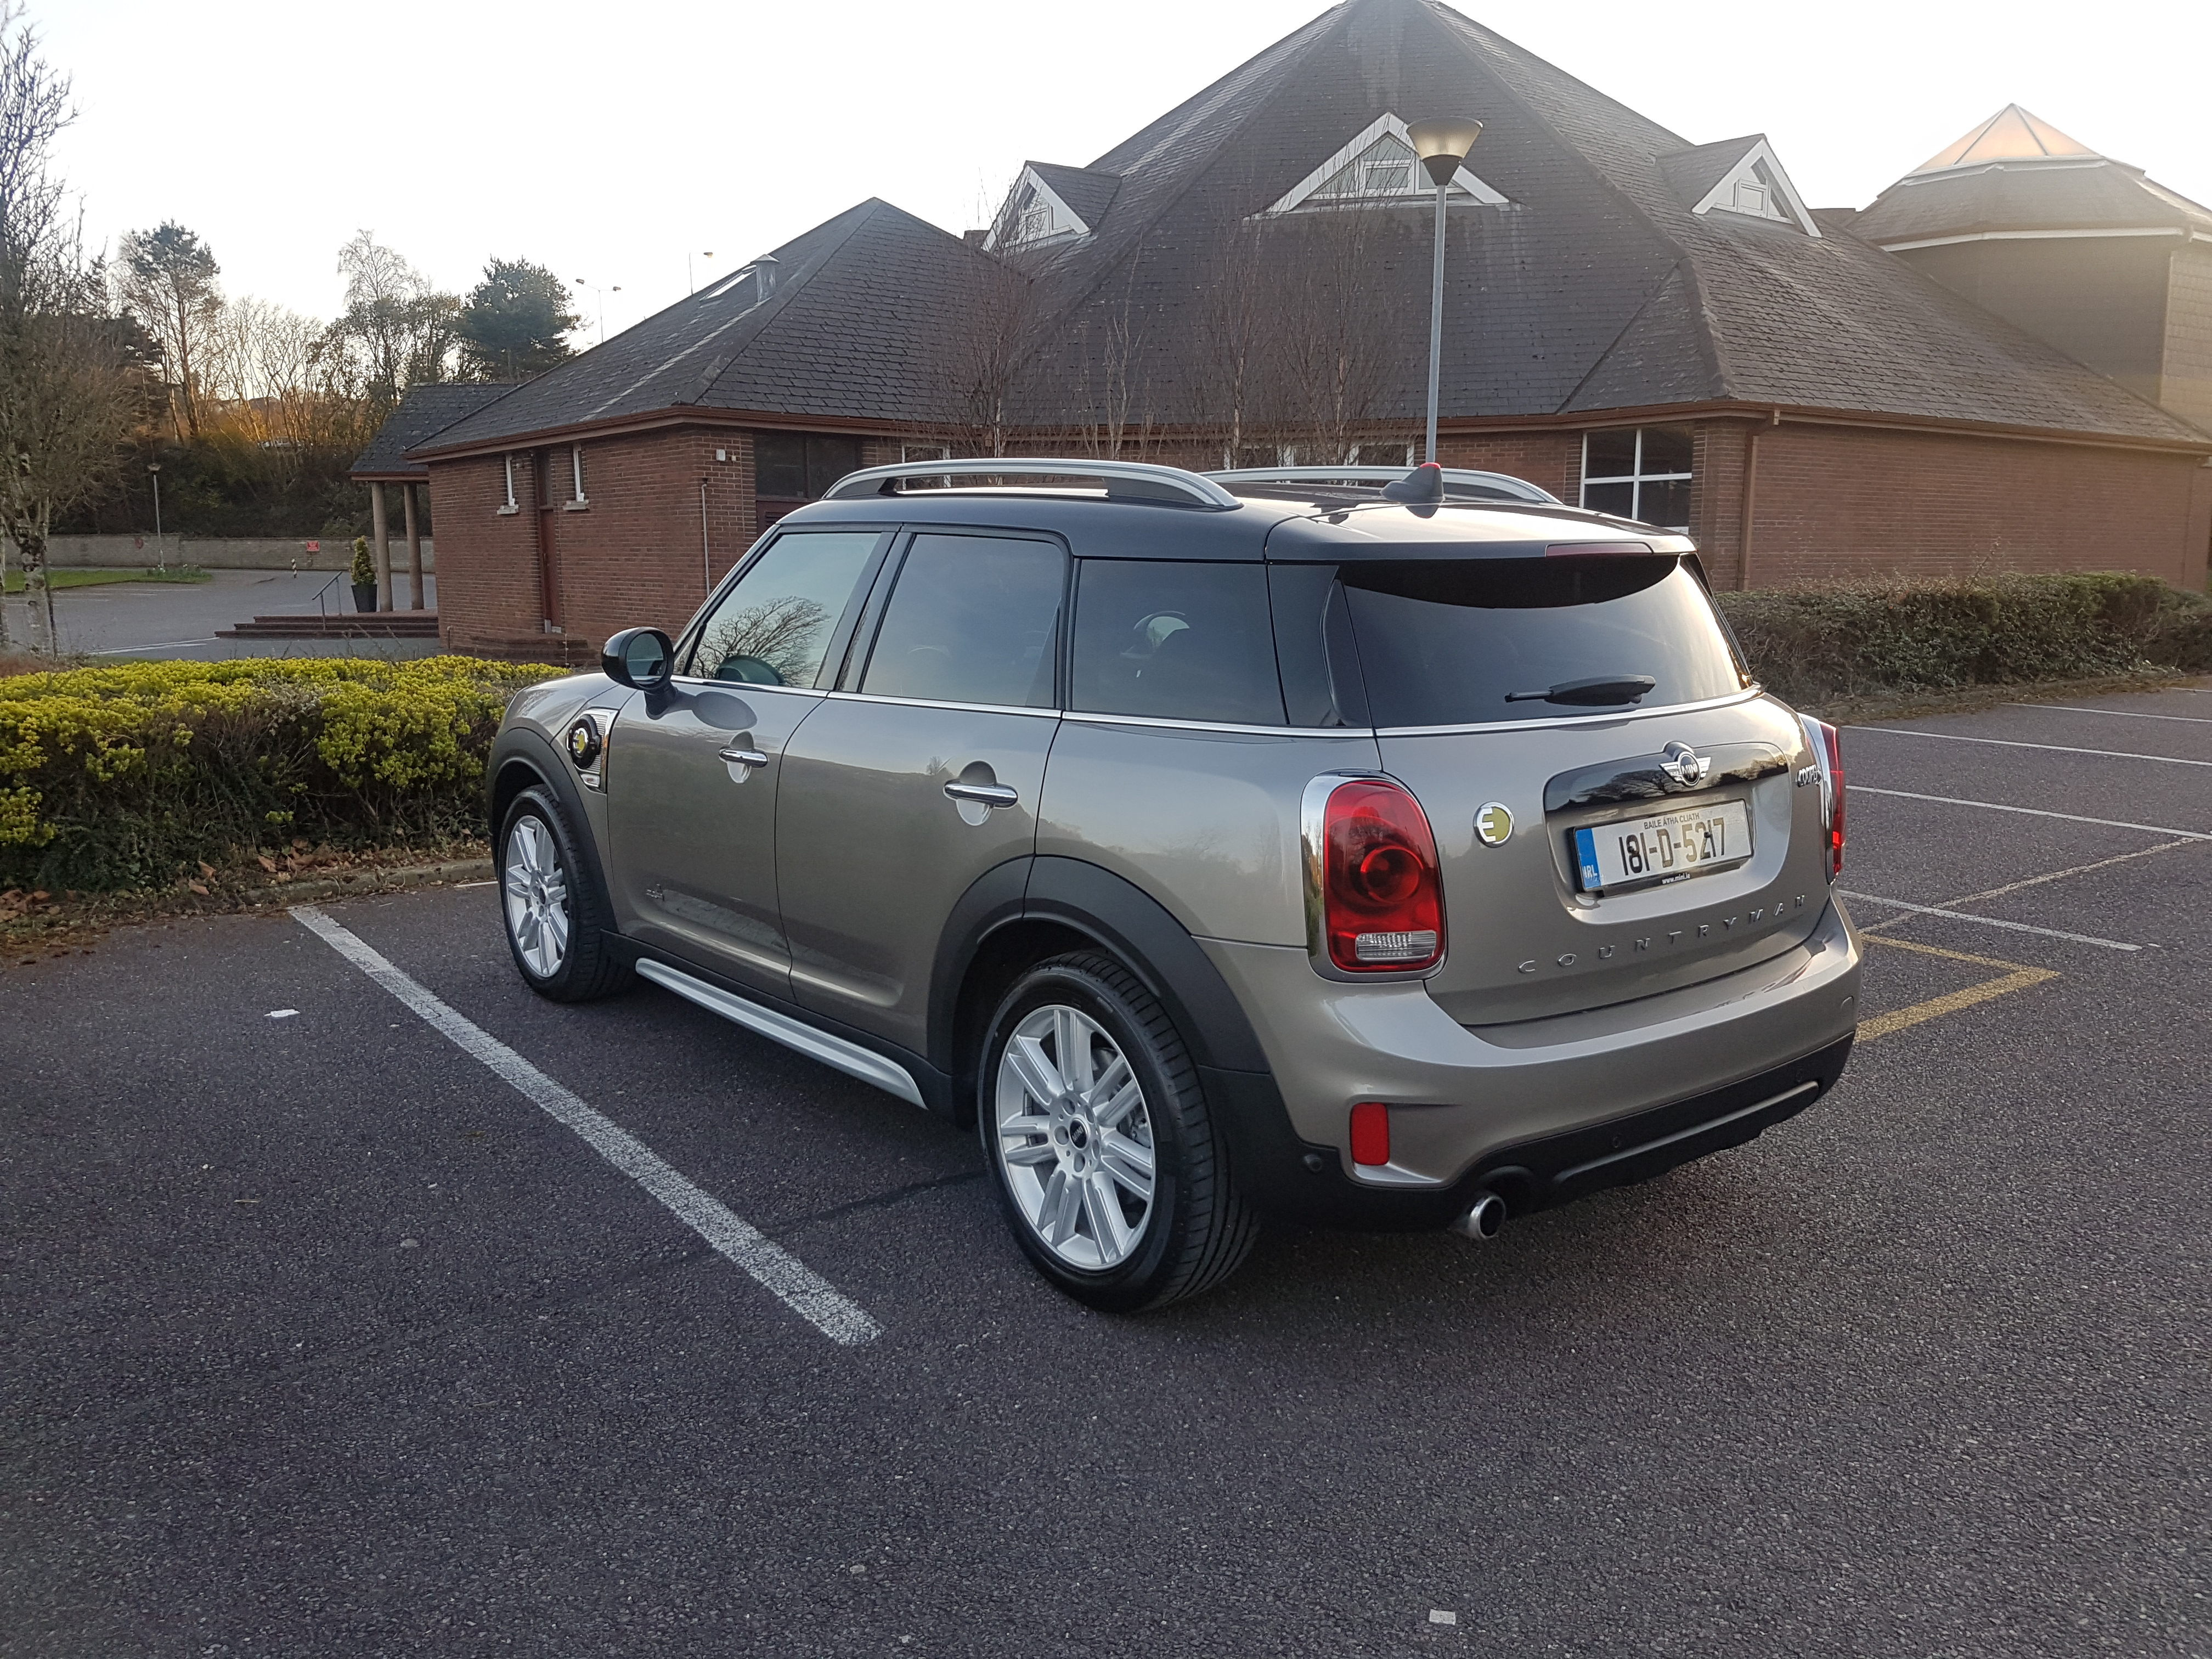 Second Step From Mini Into Electrification After The Very Exclusive 2009 E Tested By A Limited Number Of Drivers So What Is It Like To Drive